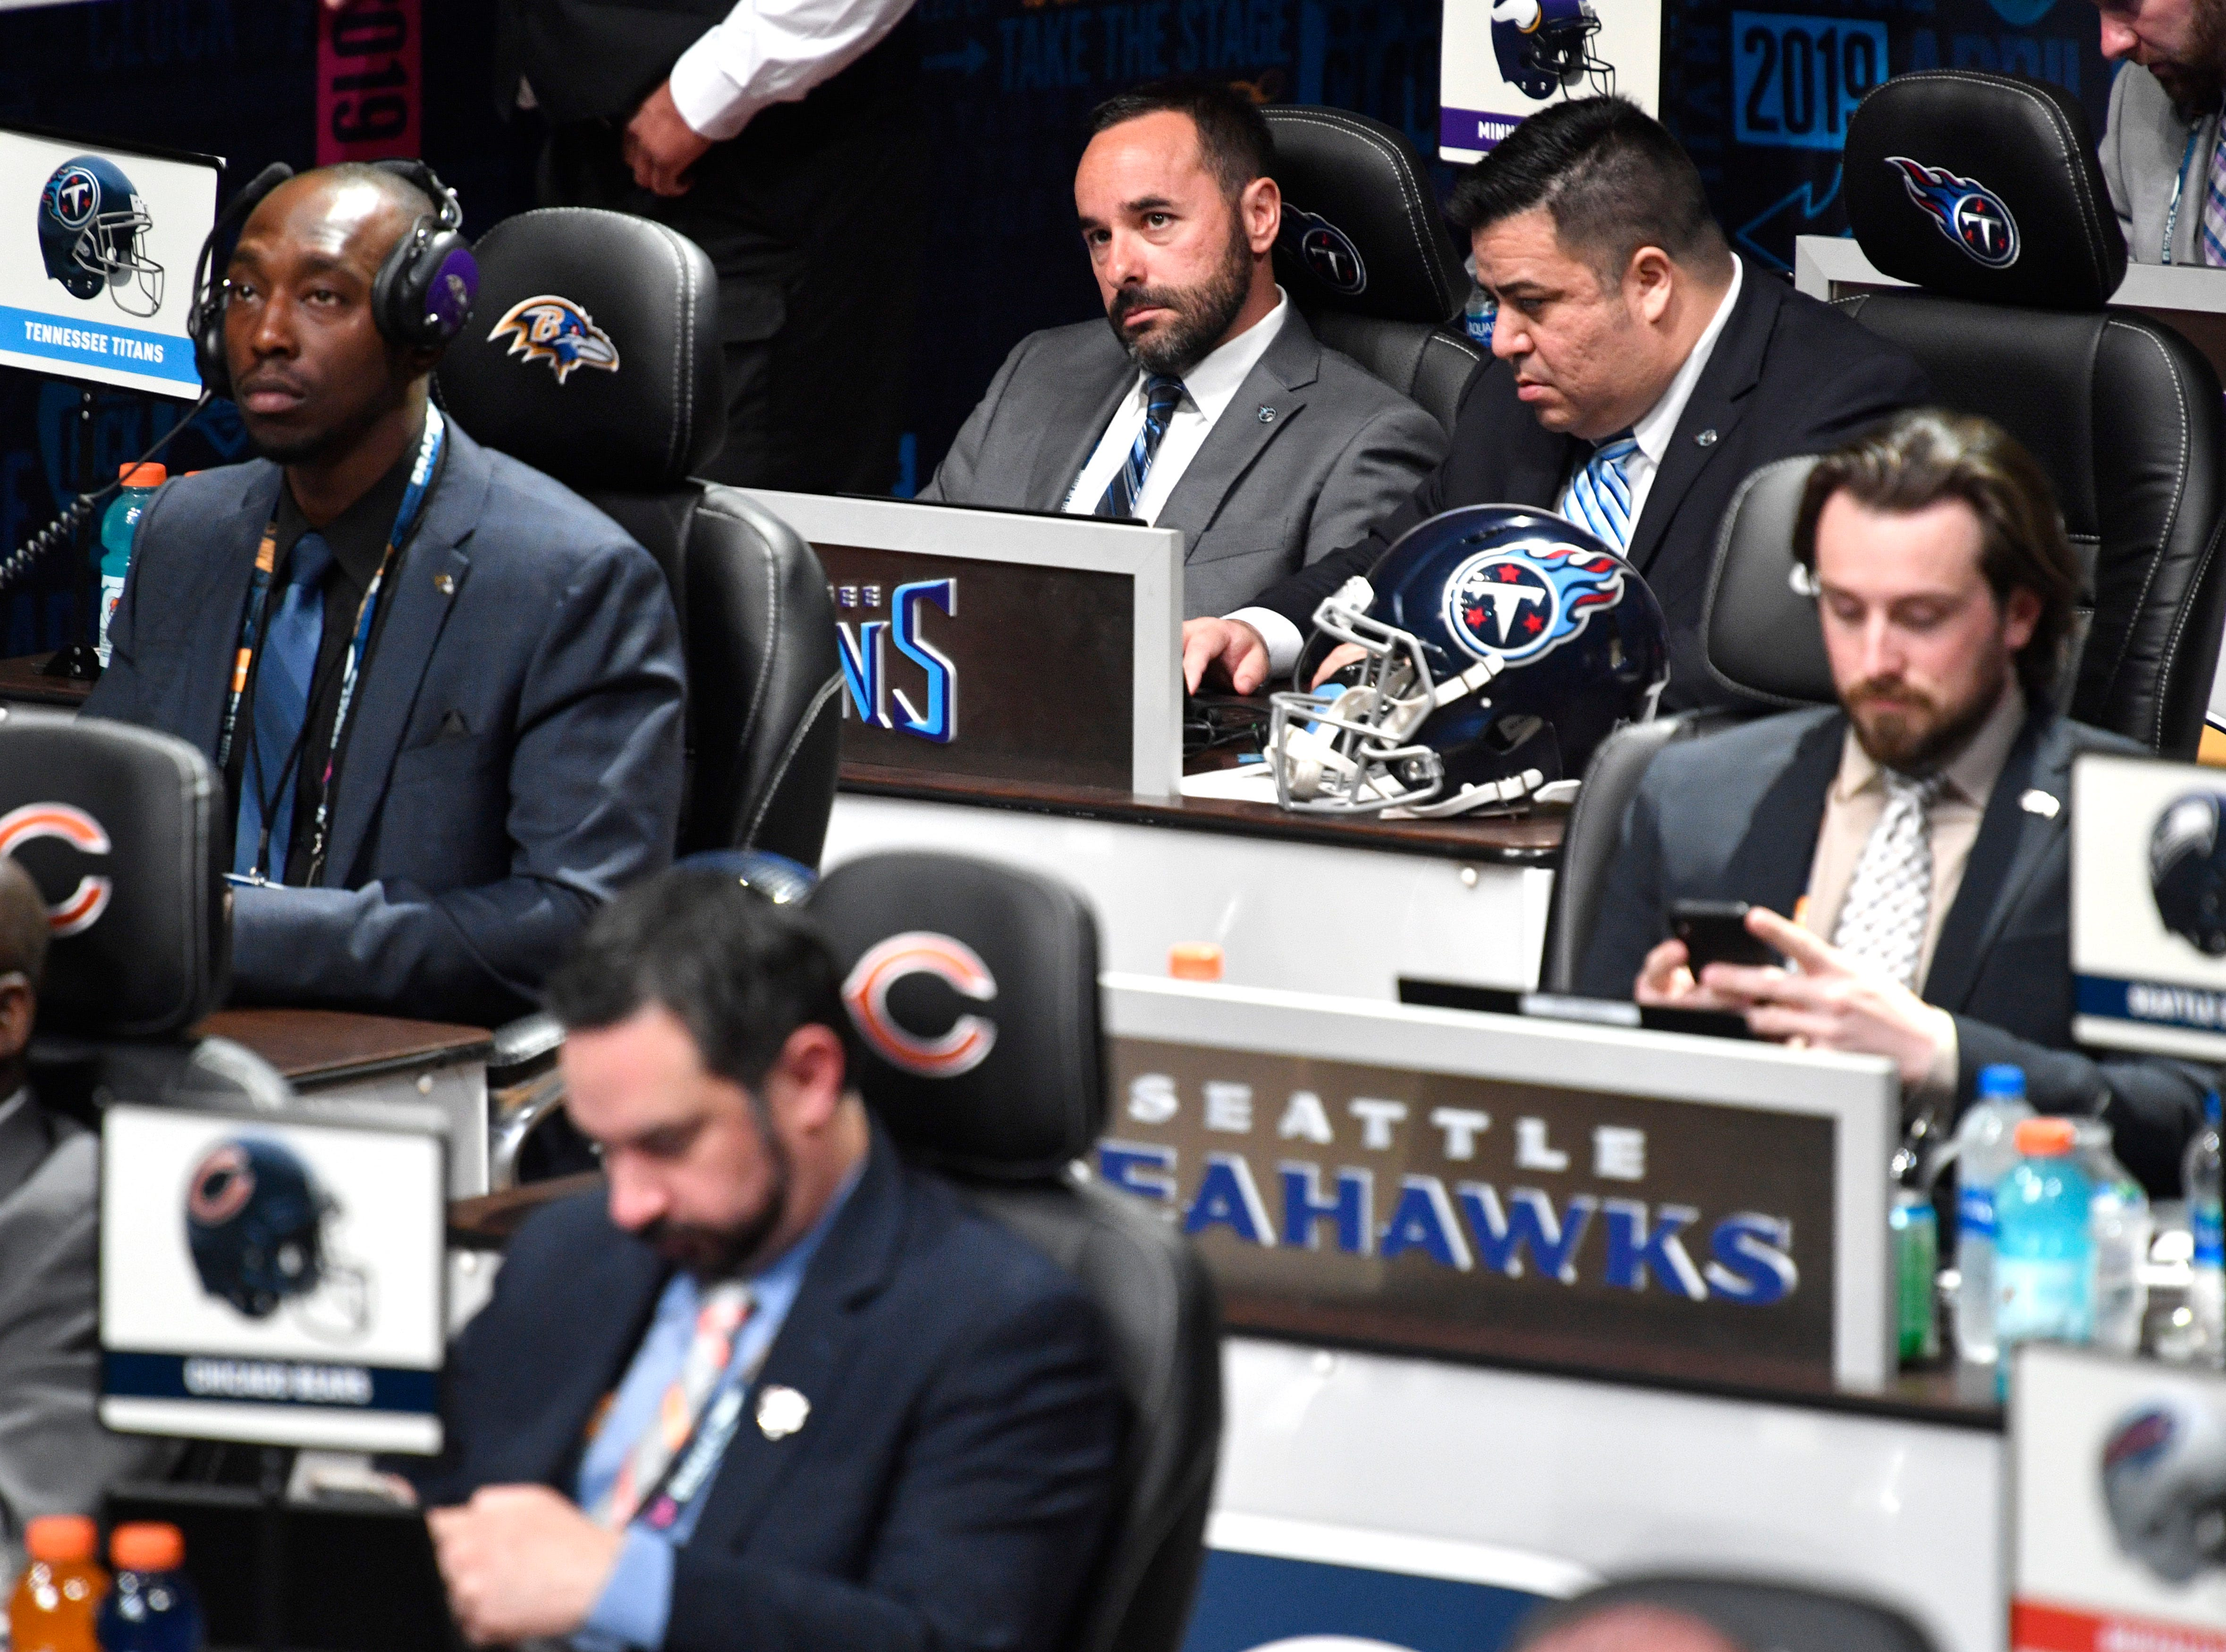 Titans personnel Joey Barranco, left, and Anthony Pastrana wait to make the team's pick in the first round of the NFL Draft Thursday, April 25, 2019, in Nashville, Tenn.